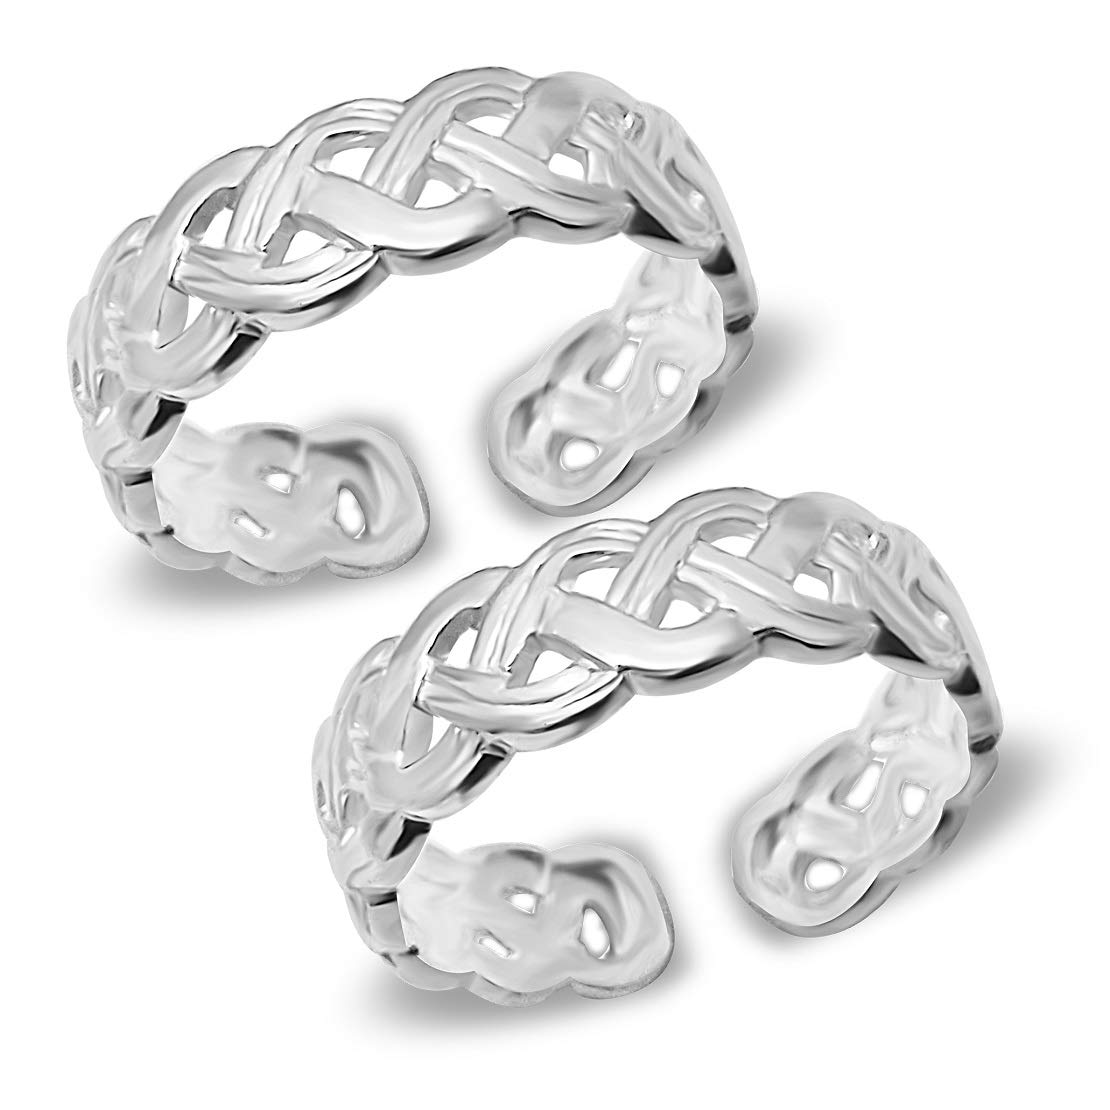 MJ 925 Criss-Cross Band Design Pure 92.5 Sterling Silver Toe Rings for Women